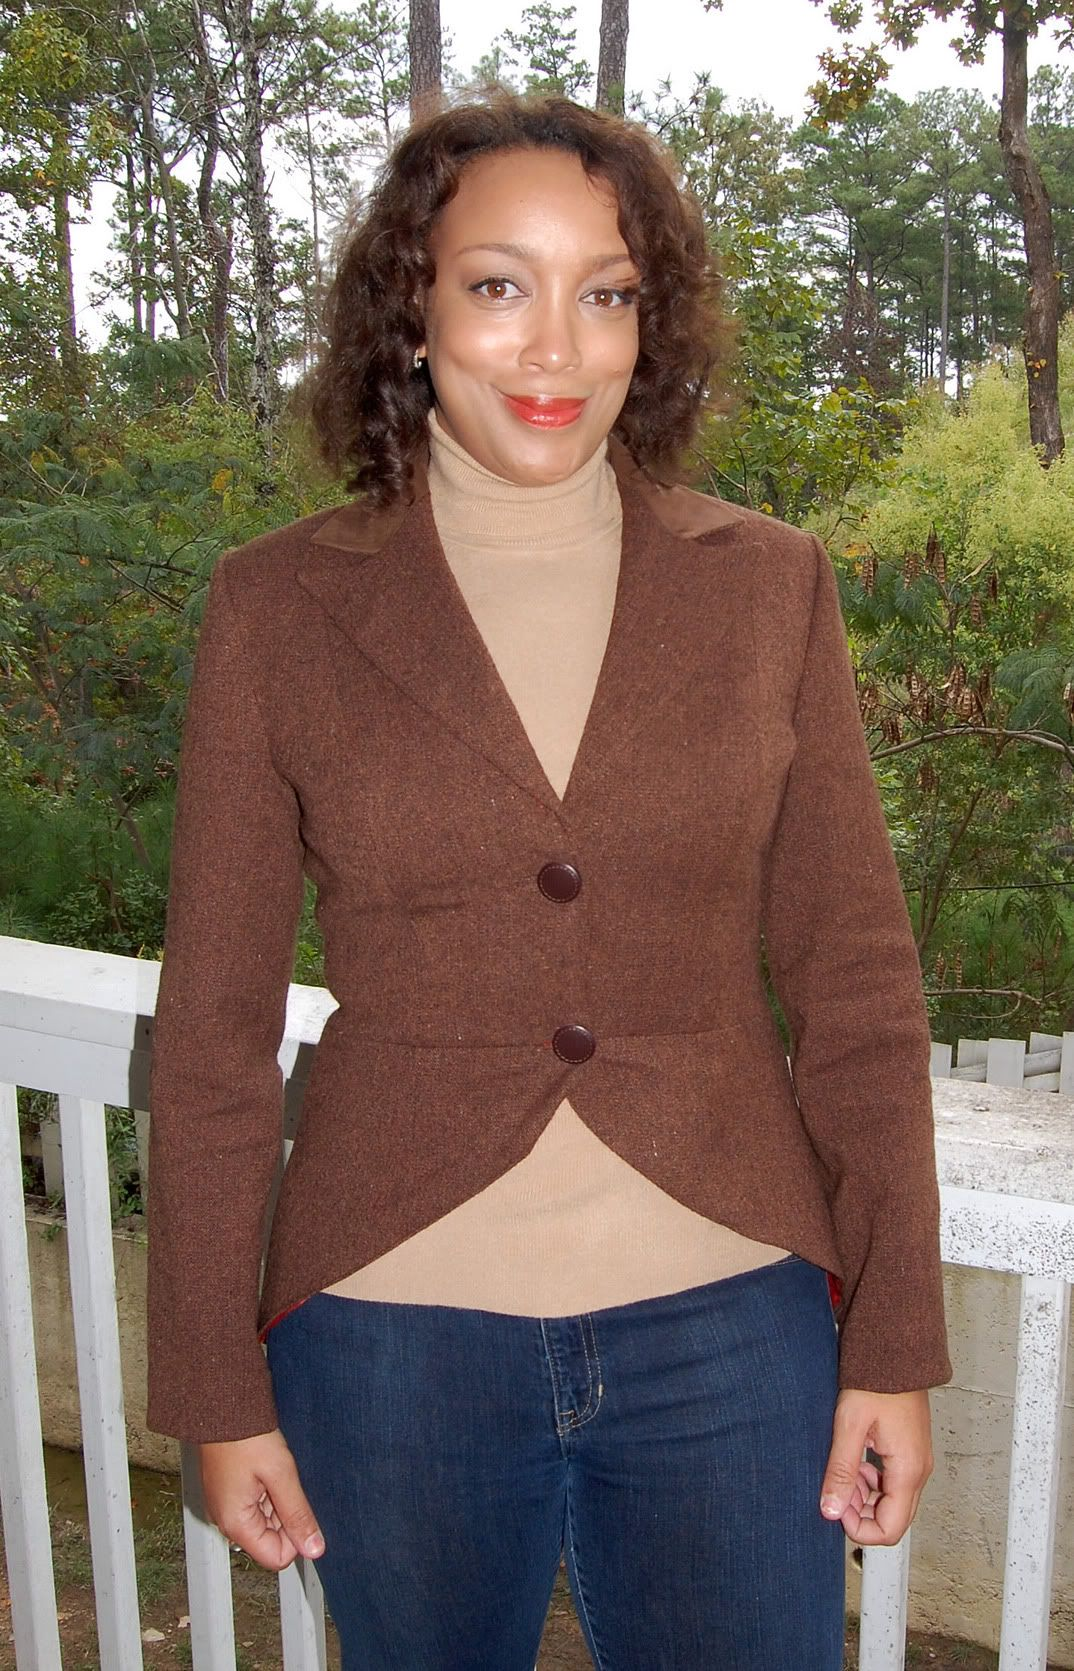 Vogue 8601 - The Tweed Riding Jacket! | Erica B.\'s - D.I.Y. Style ...